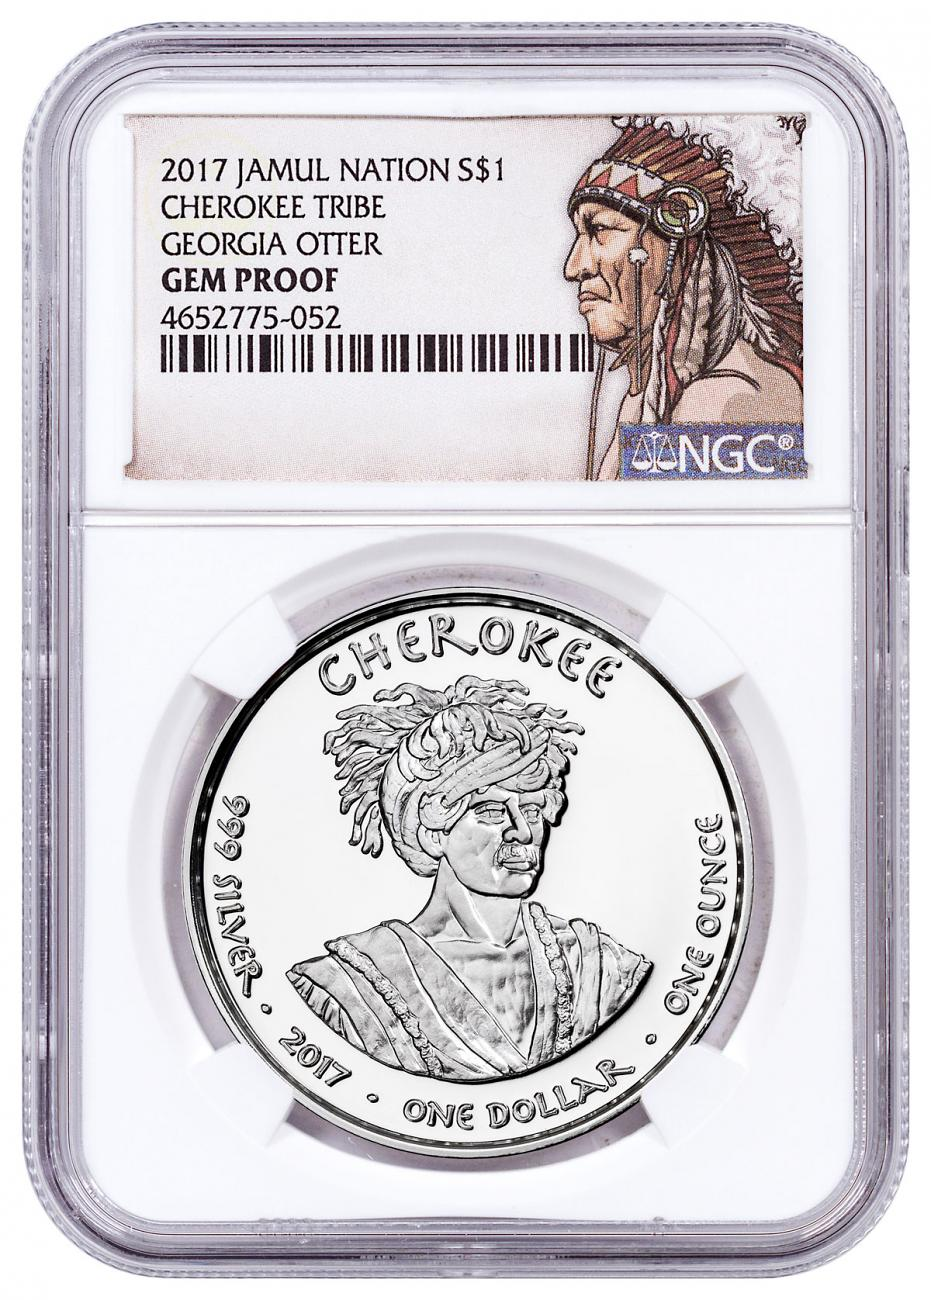 2017 Native American Silver Dollar - Georgia Cherokee - Otter 1 oz Silver Proof Coin NGC GEM Proof Native American Label